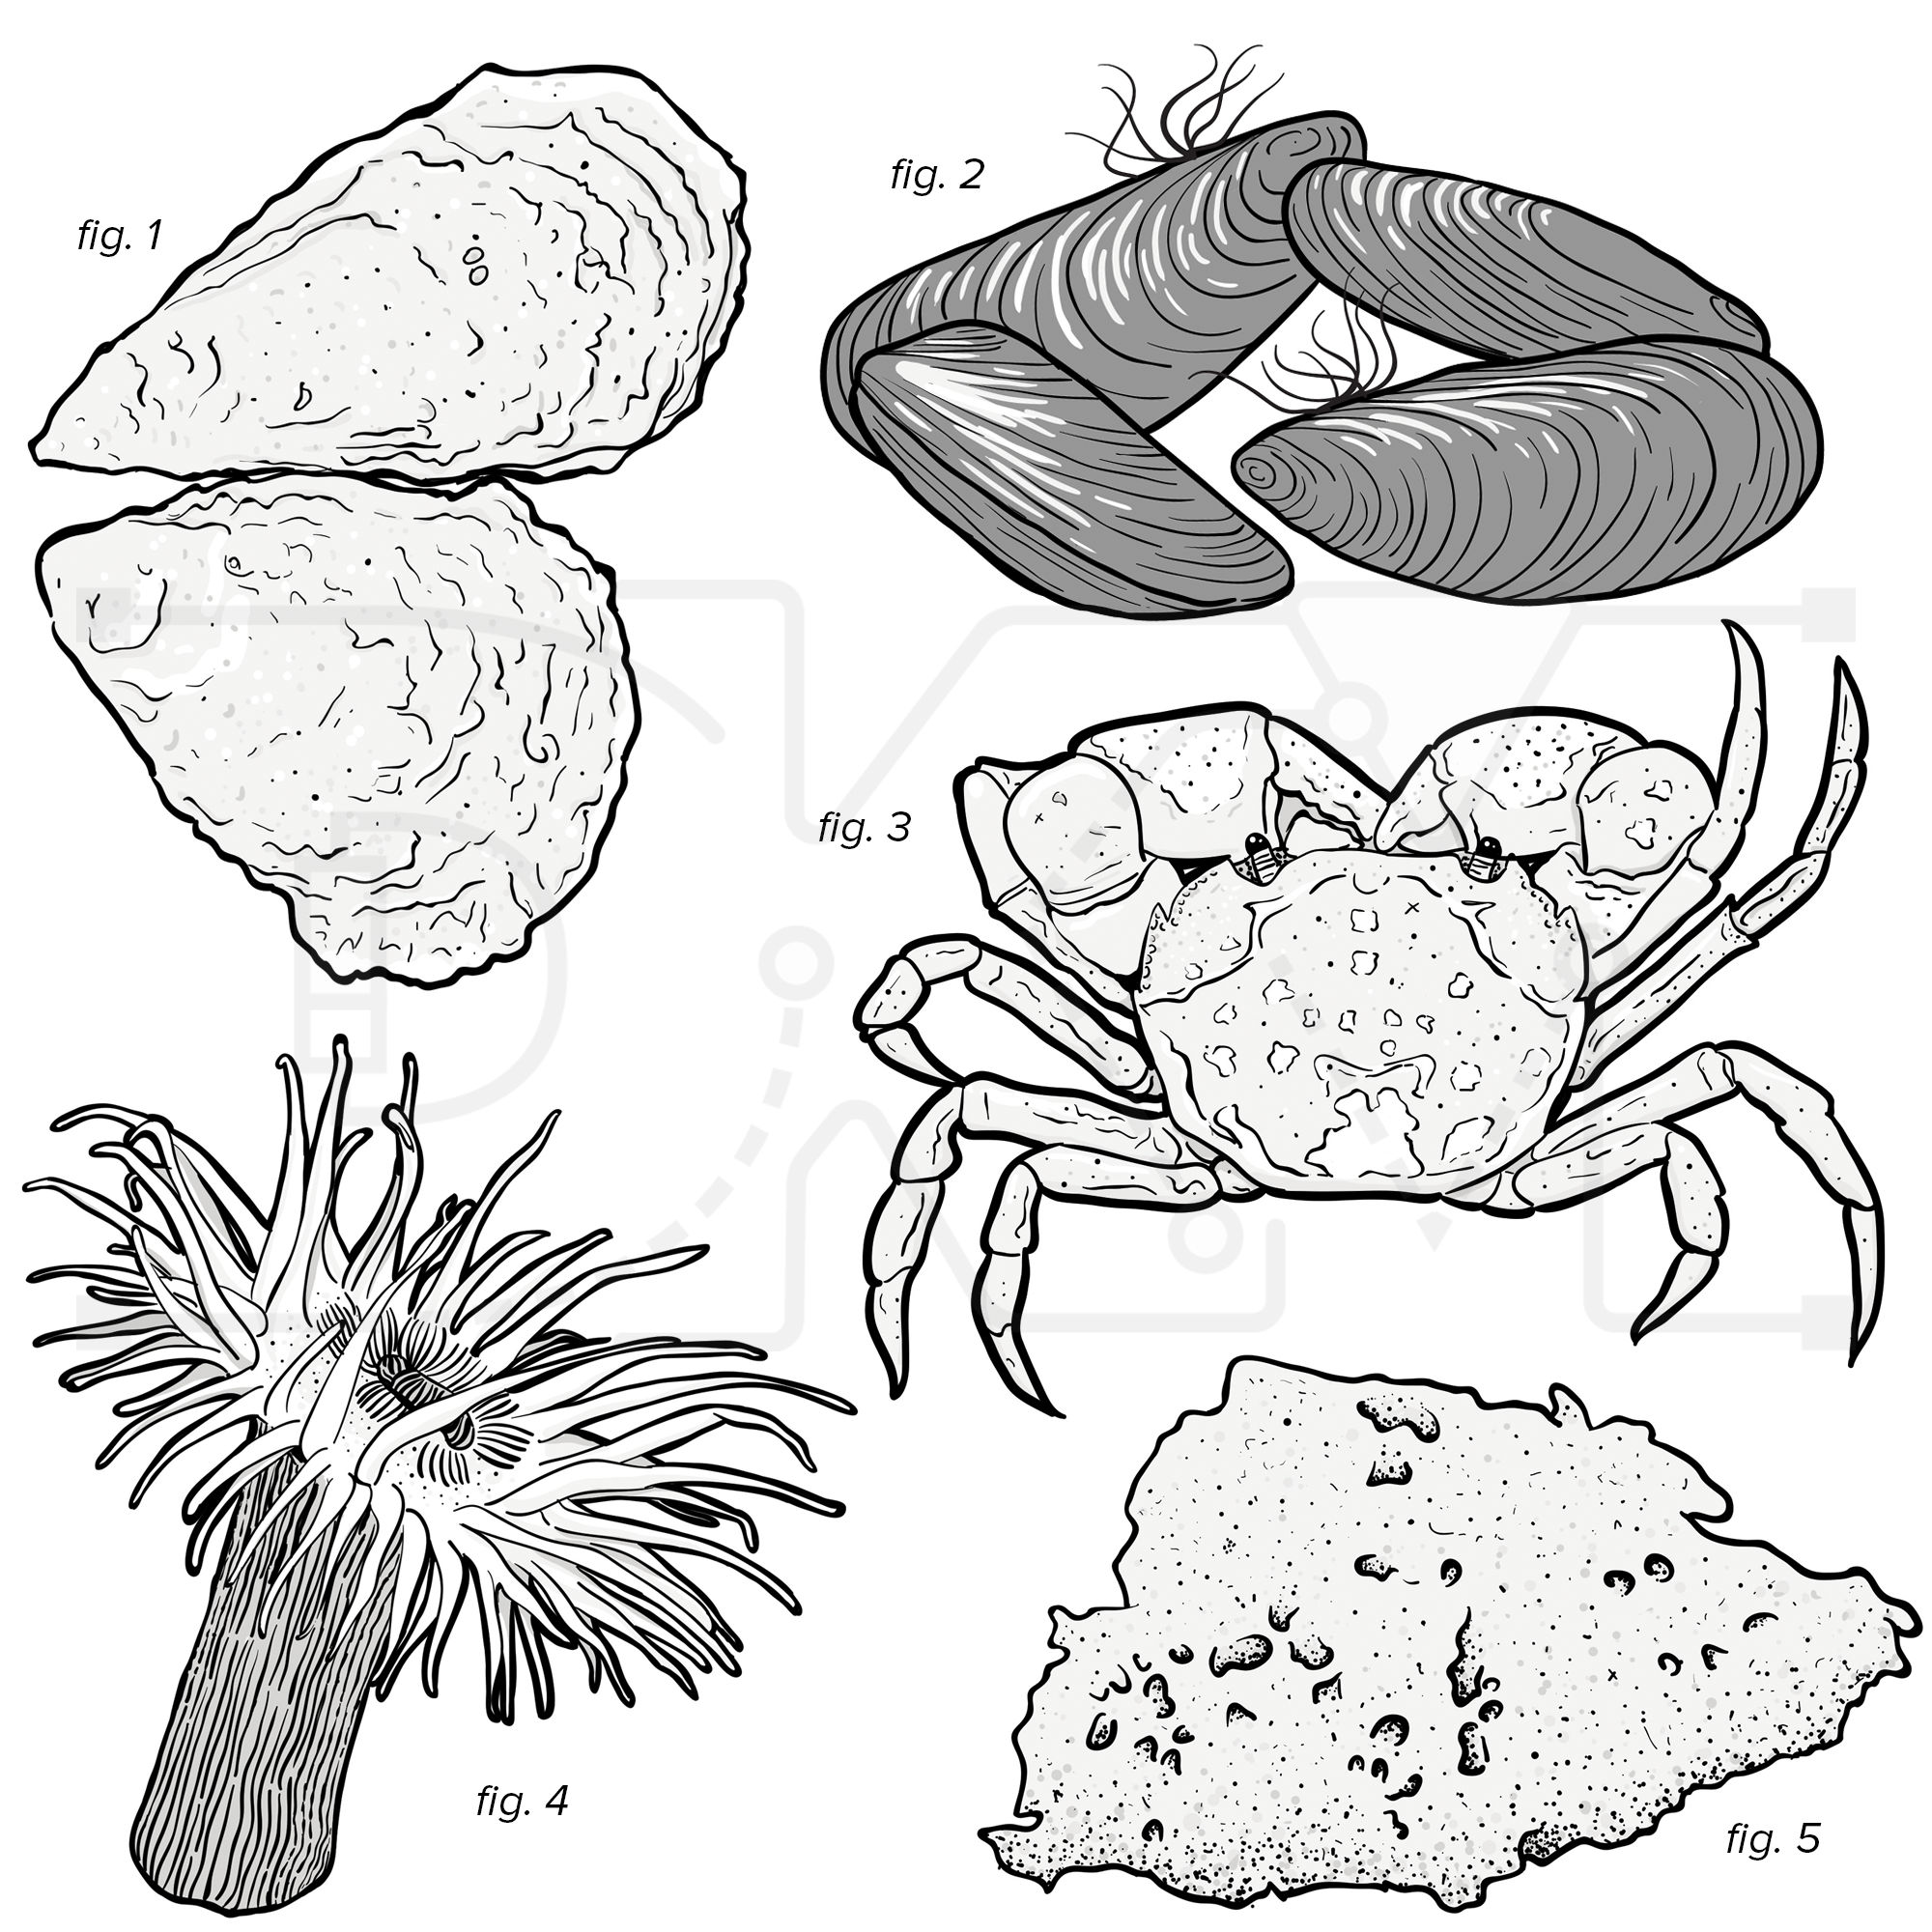 1: Oysters, 2: Mussels, 3: Crab, 4: Sea anemone, 5:Sponge